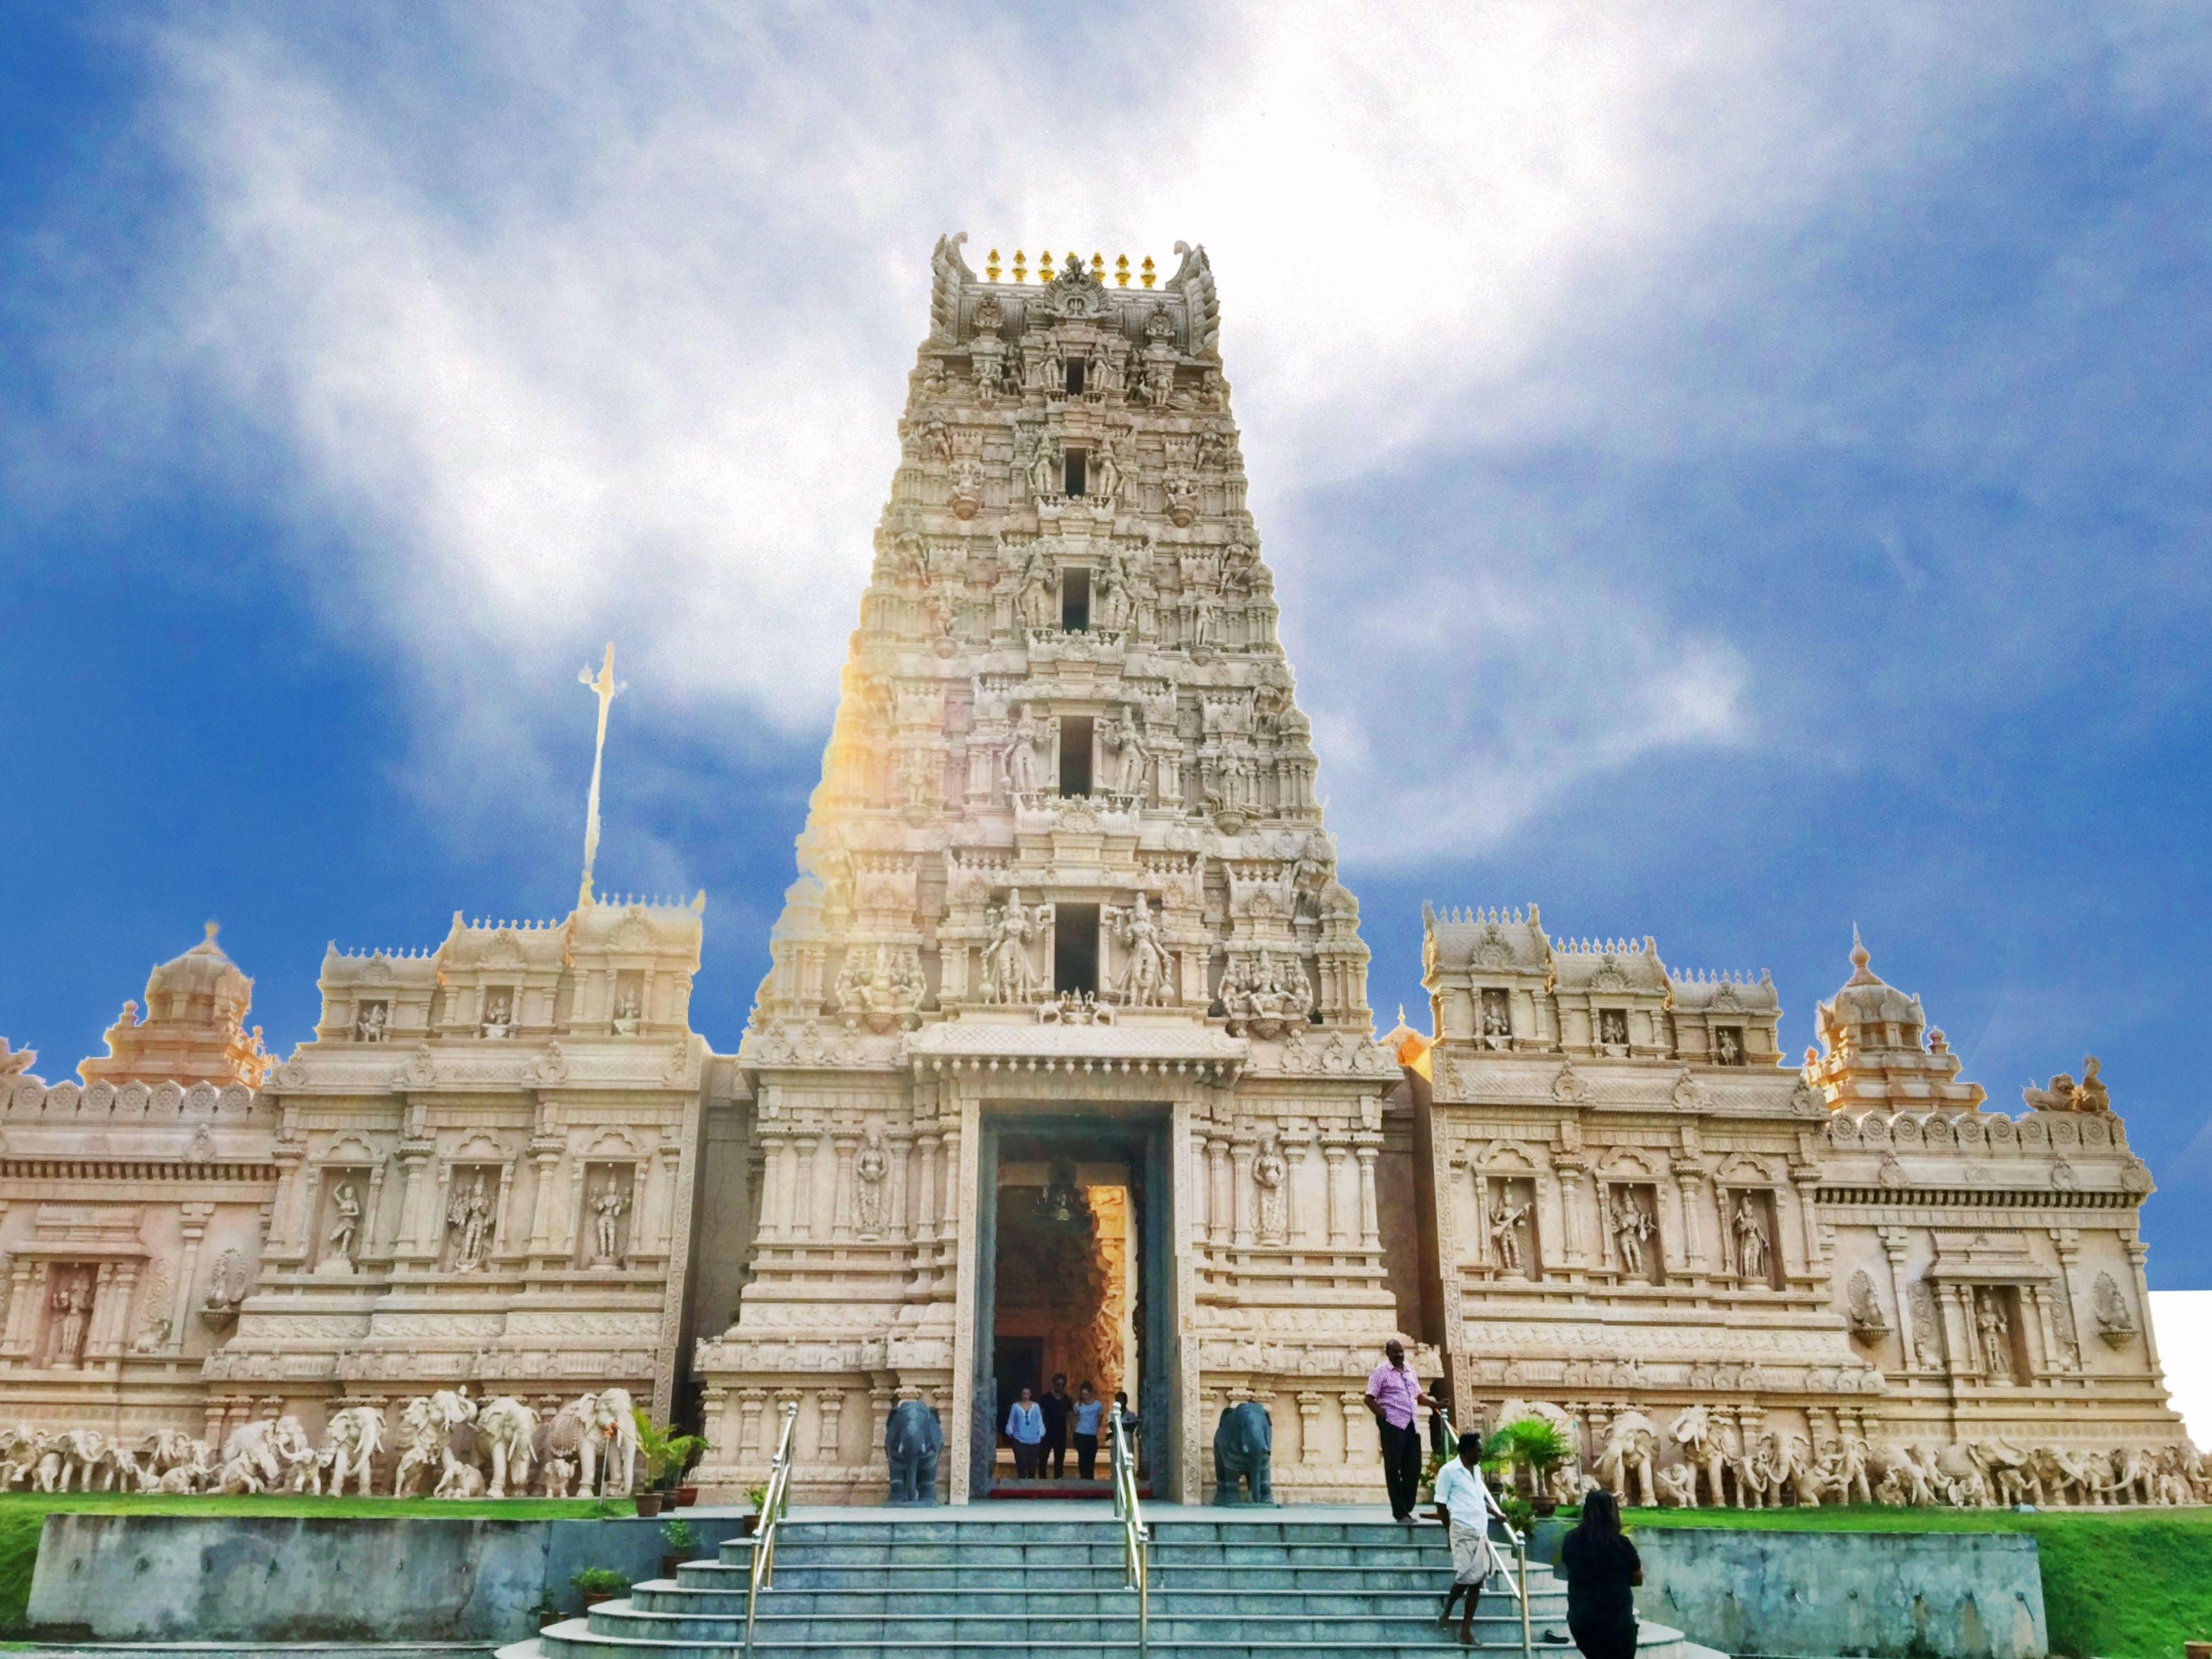 """Now there is a new attraction in Bukit Rotan, a magnificent temple called the Sri Shakti Temple with finely sculpted stone walls and an intricately decorated 5 tier gopuram entrance tower. This must be one of the finest looking Hindu temples in Malaysia and may well become a leading tourist attraction as its fame spreads in years to come."""